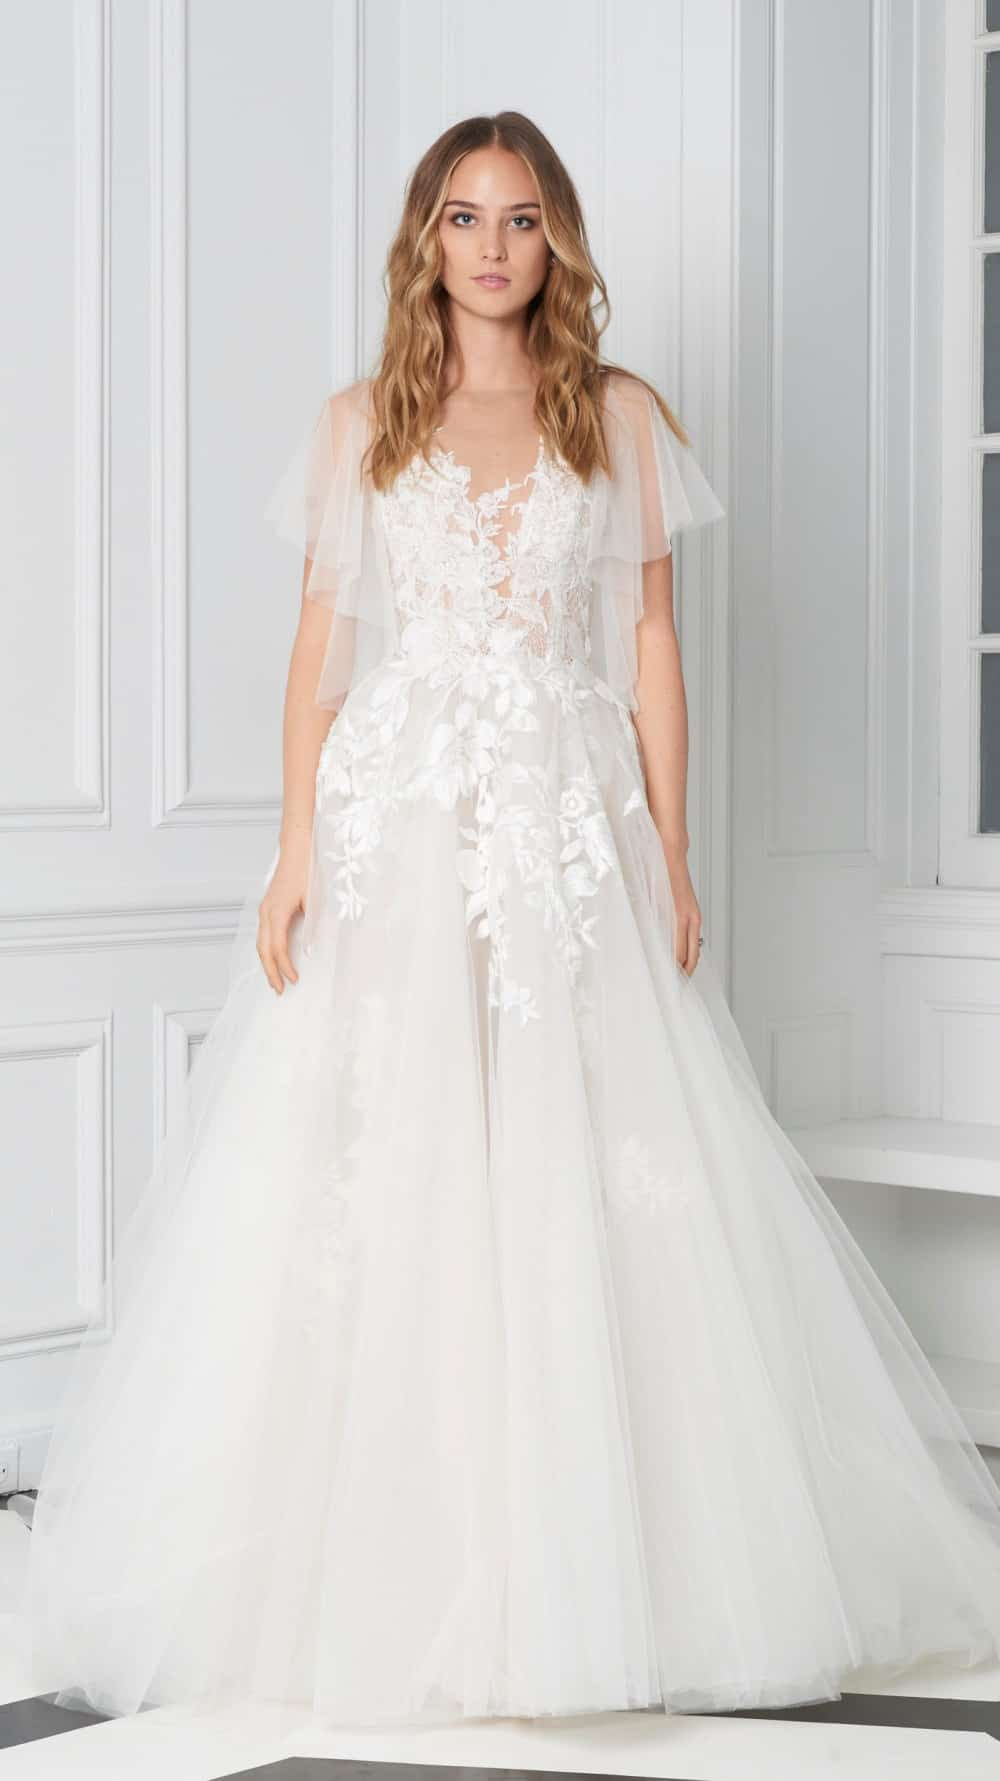 Flutter sleeve sheer wedding dress by Bliss Monique Lhuillier